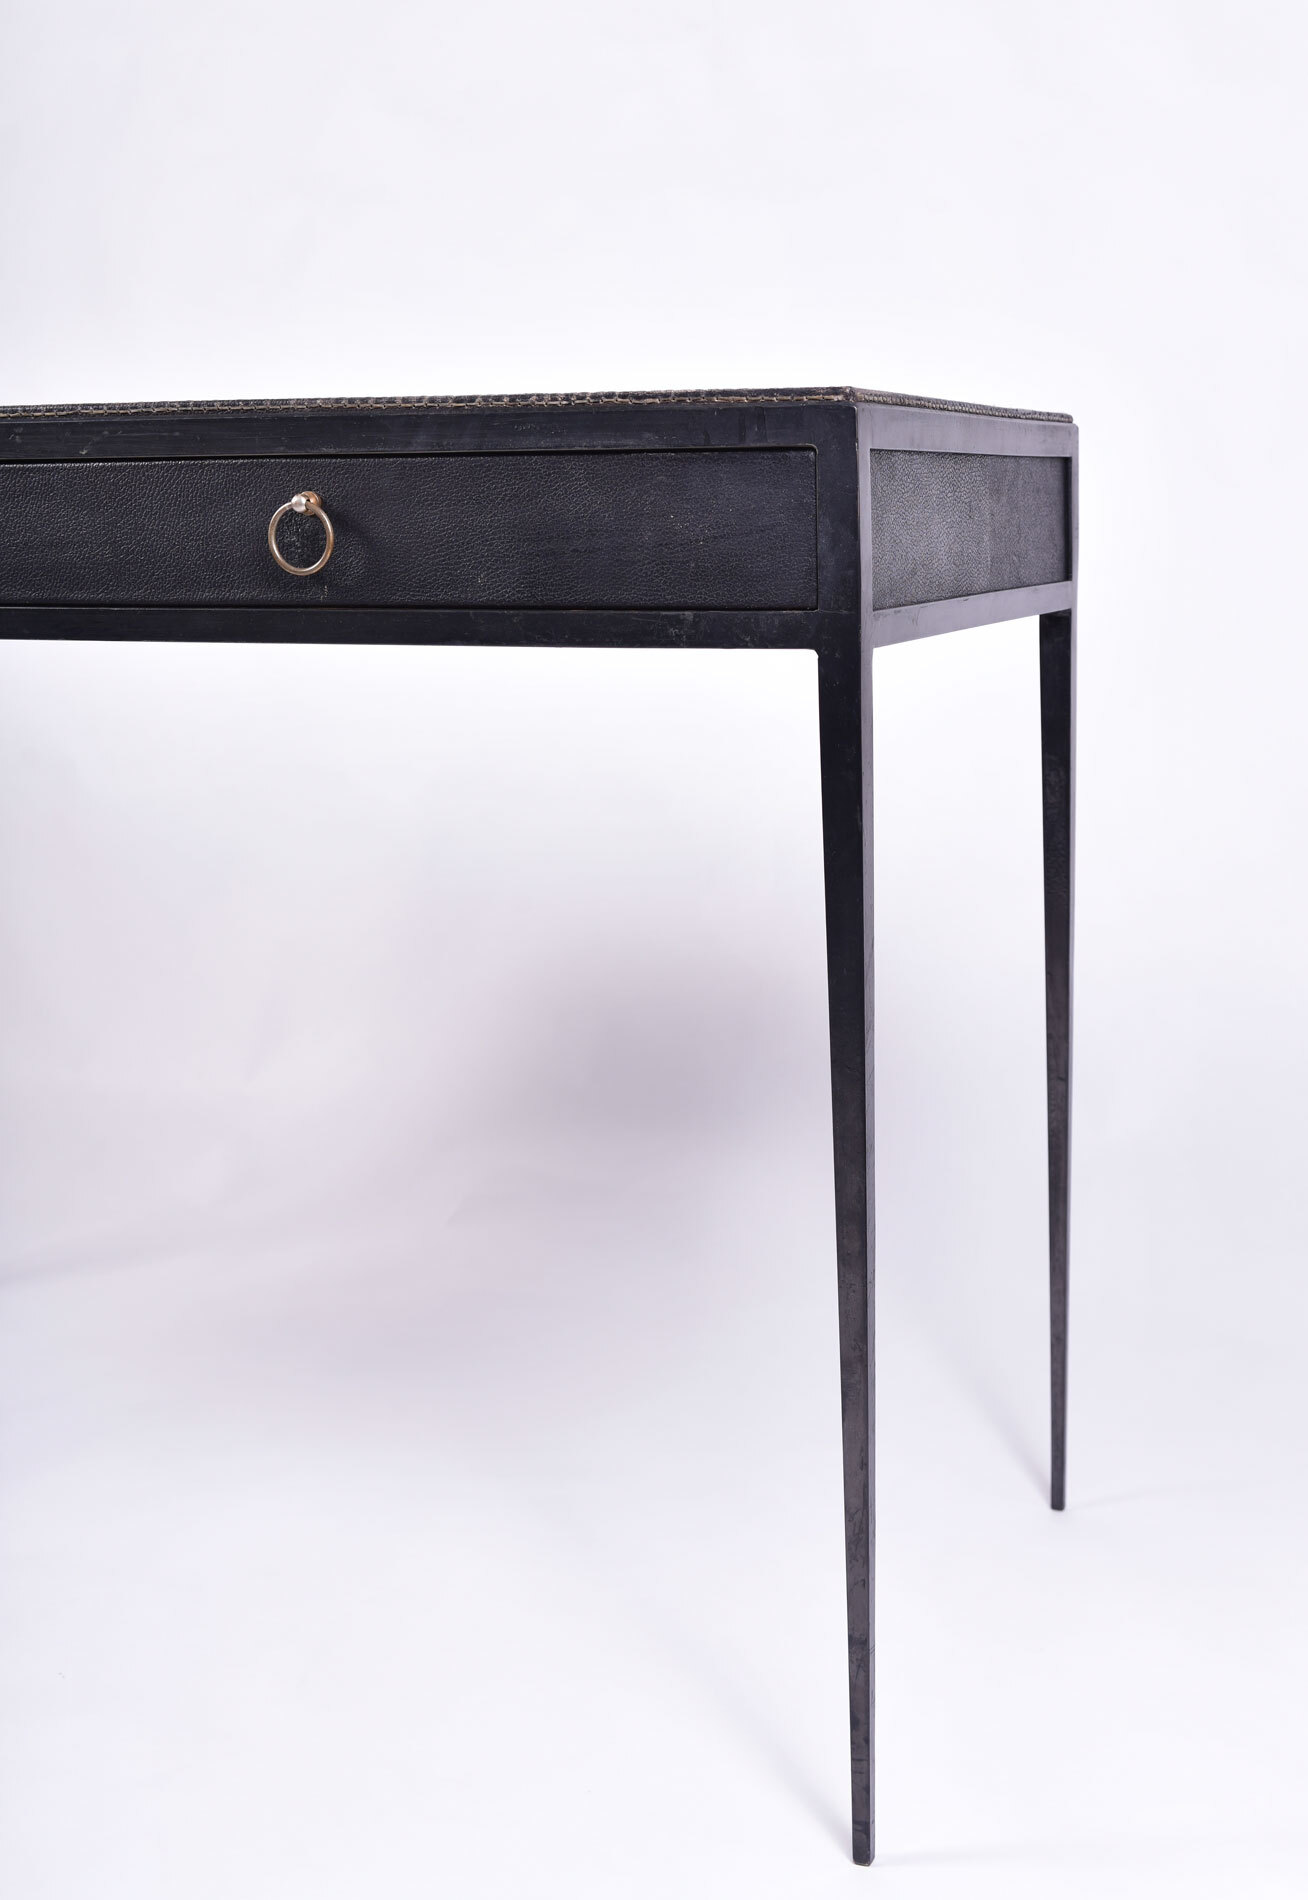 The image for Jmf Leather Desk 05